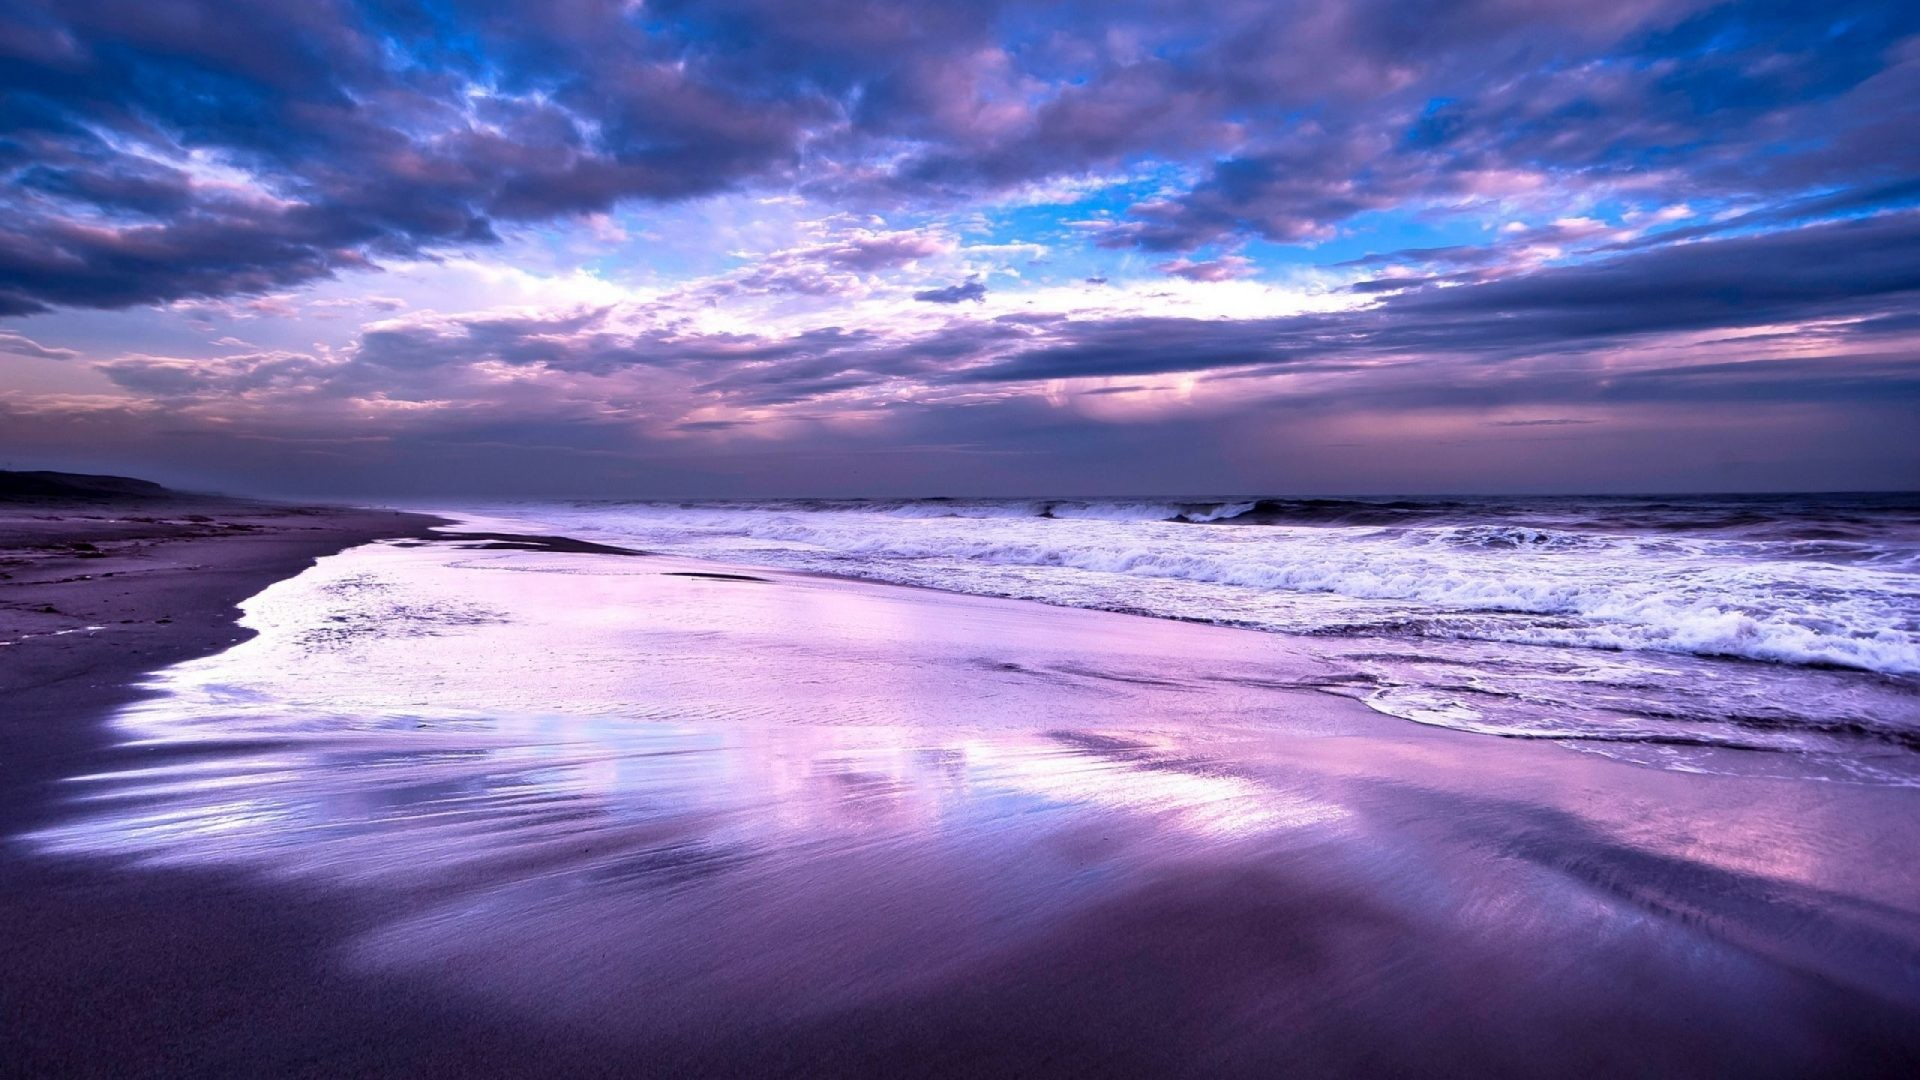 Res: 1920x1080, Waves Tag - Reflection Shore Purple Sea Waves Ocean Beach Coast Nature  Wallpaper For Phone Hd